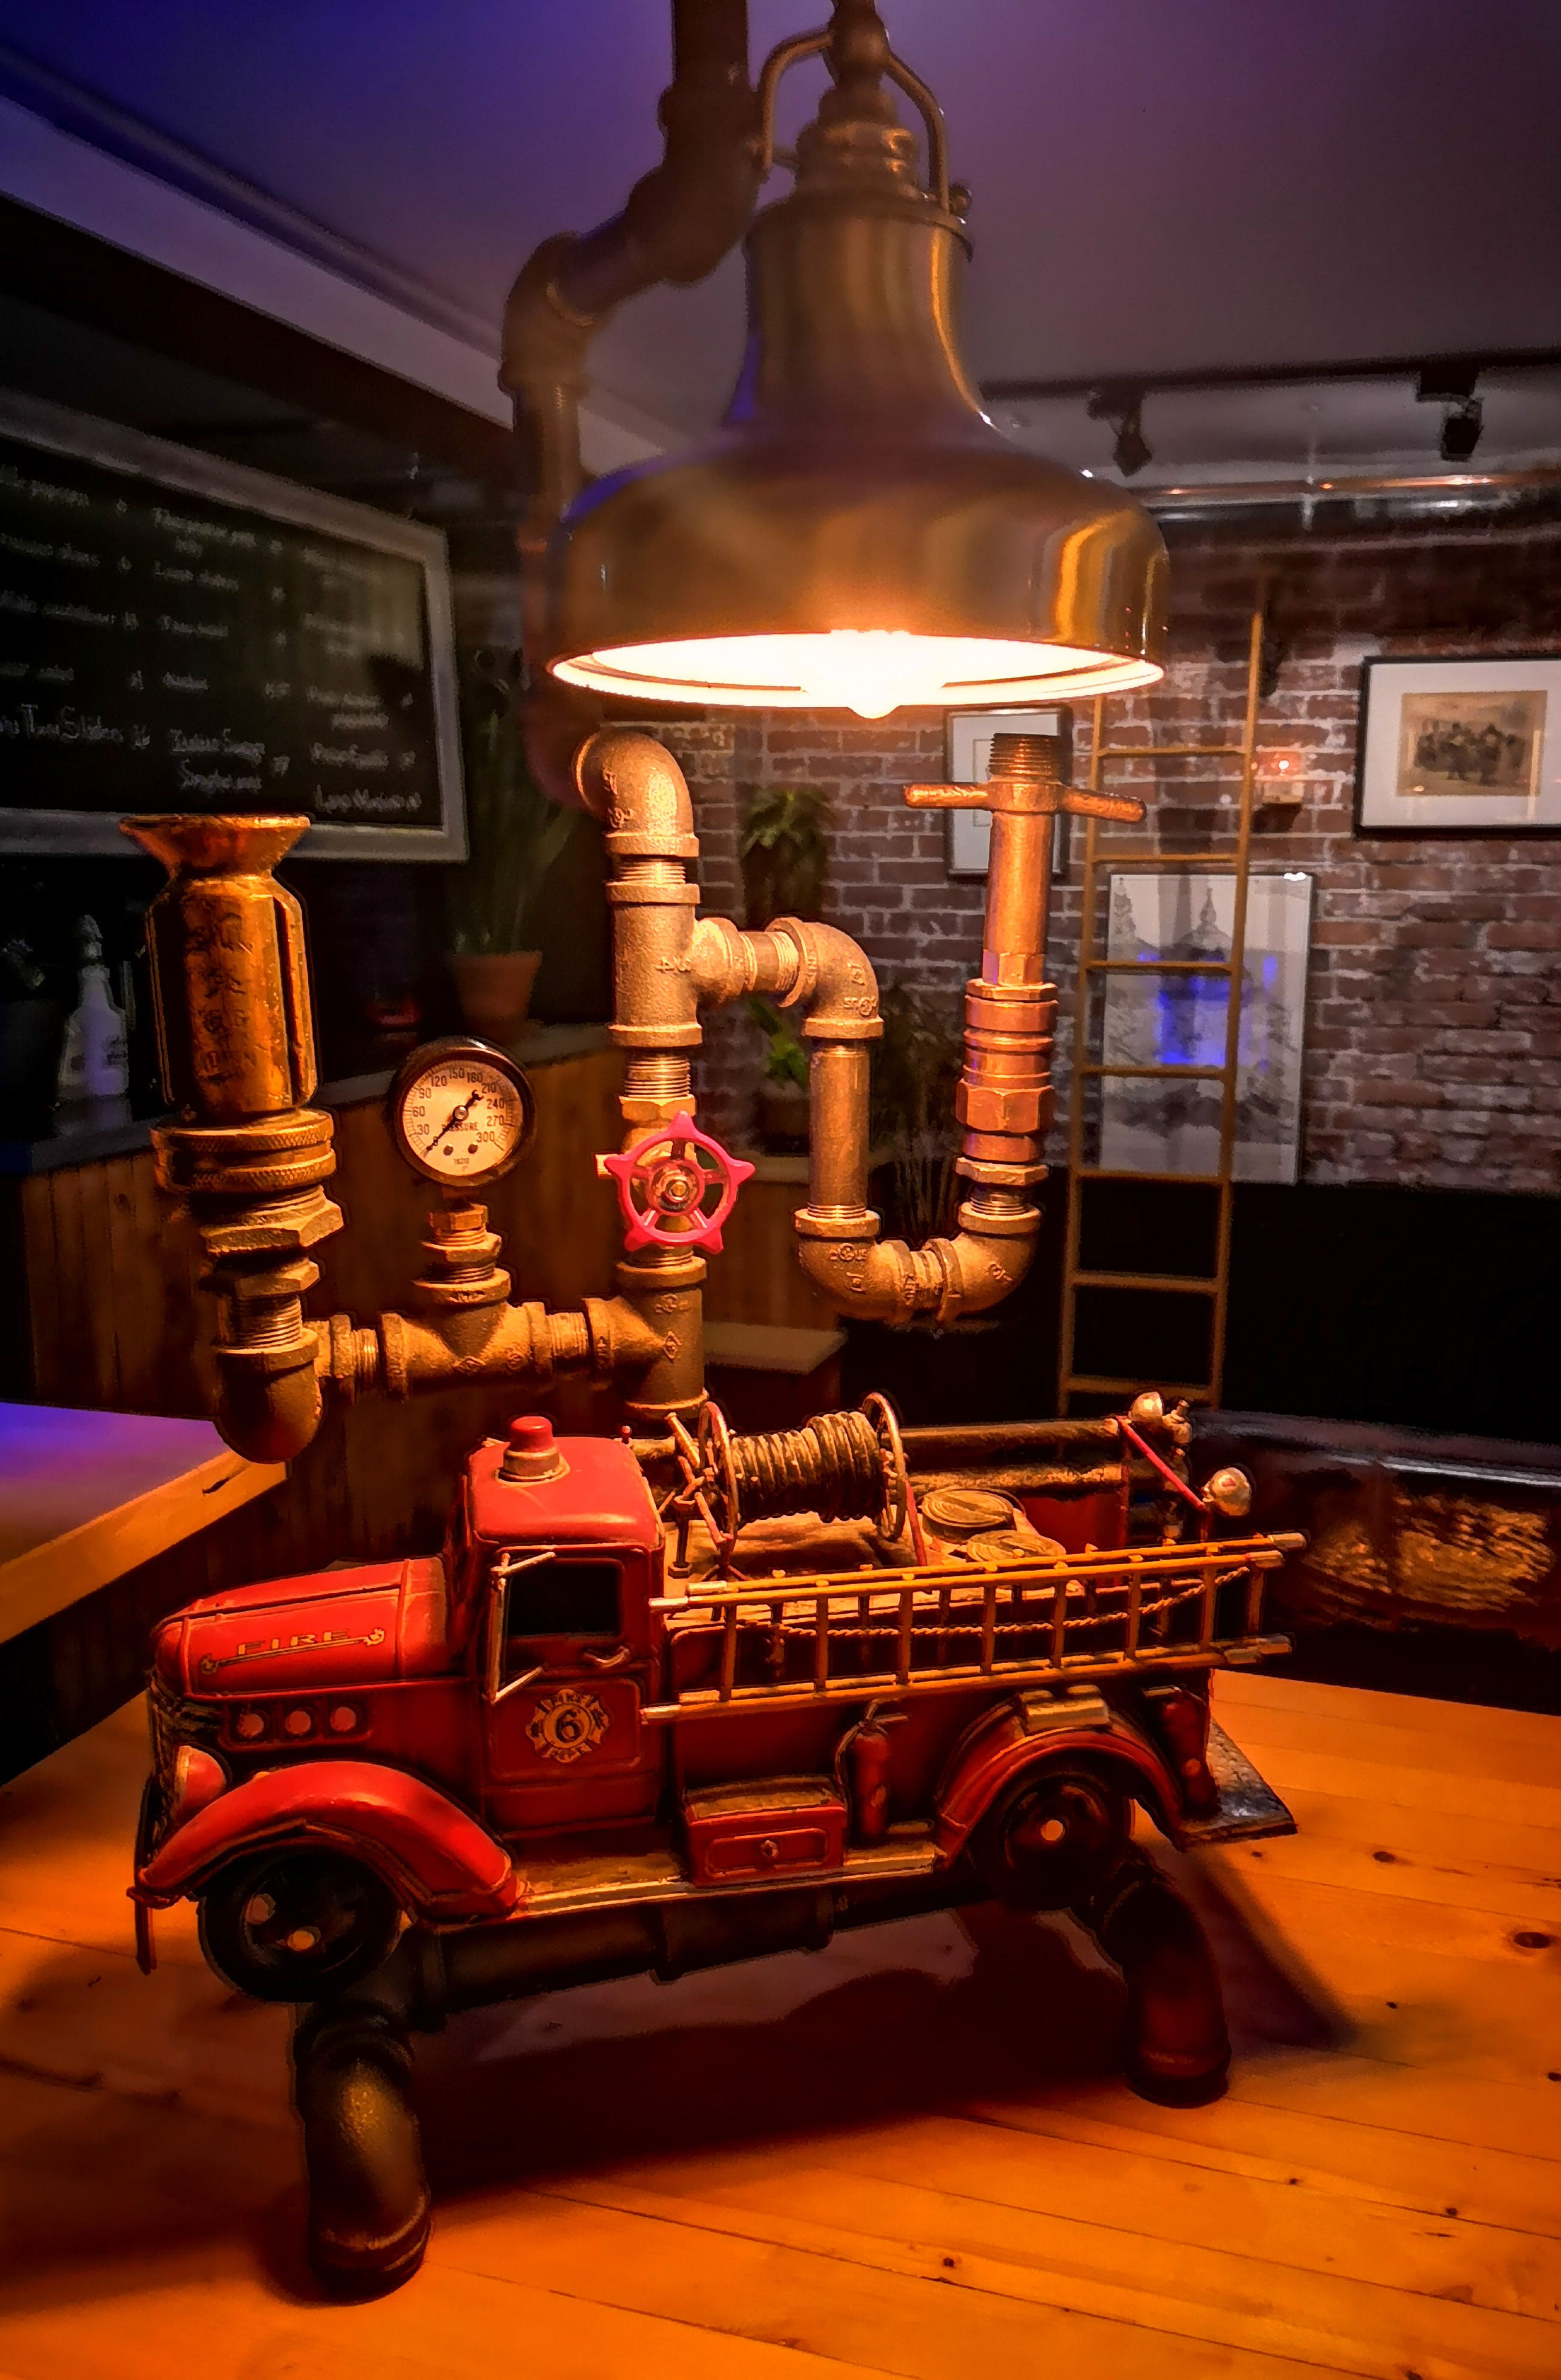 hand-made, industrial, fire truck lamp